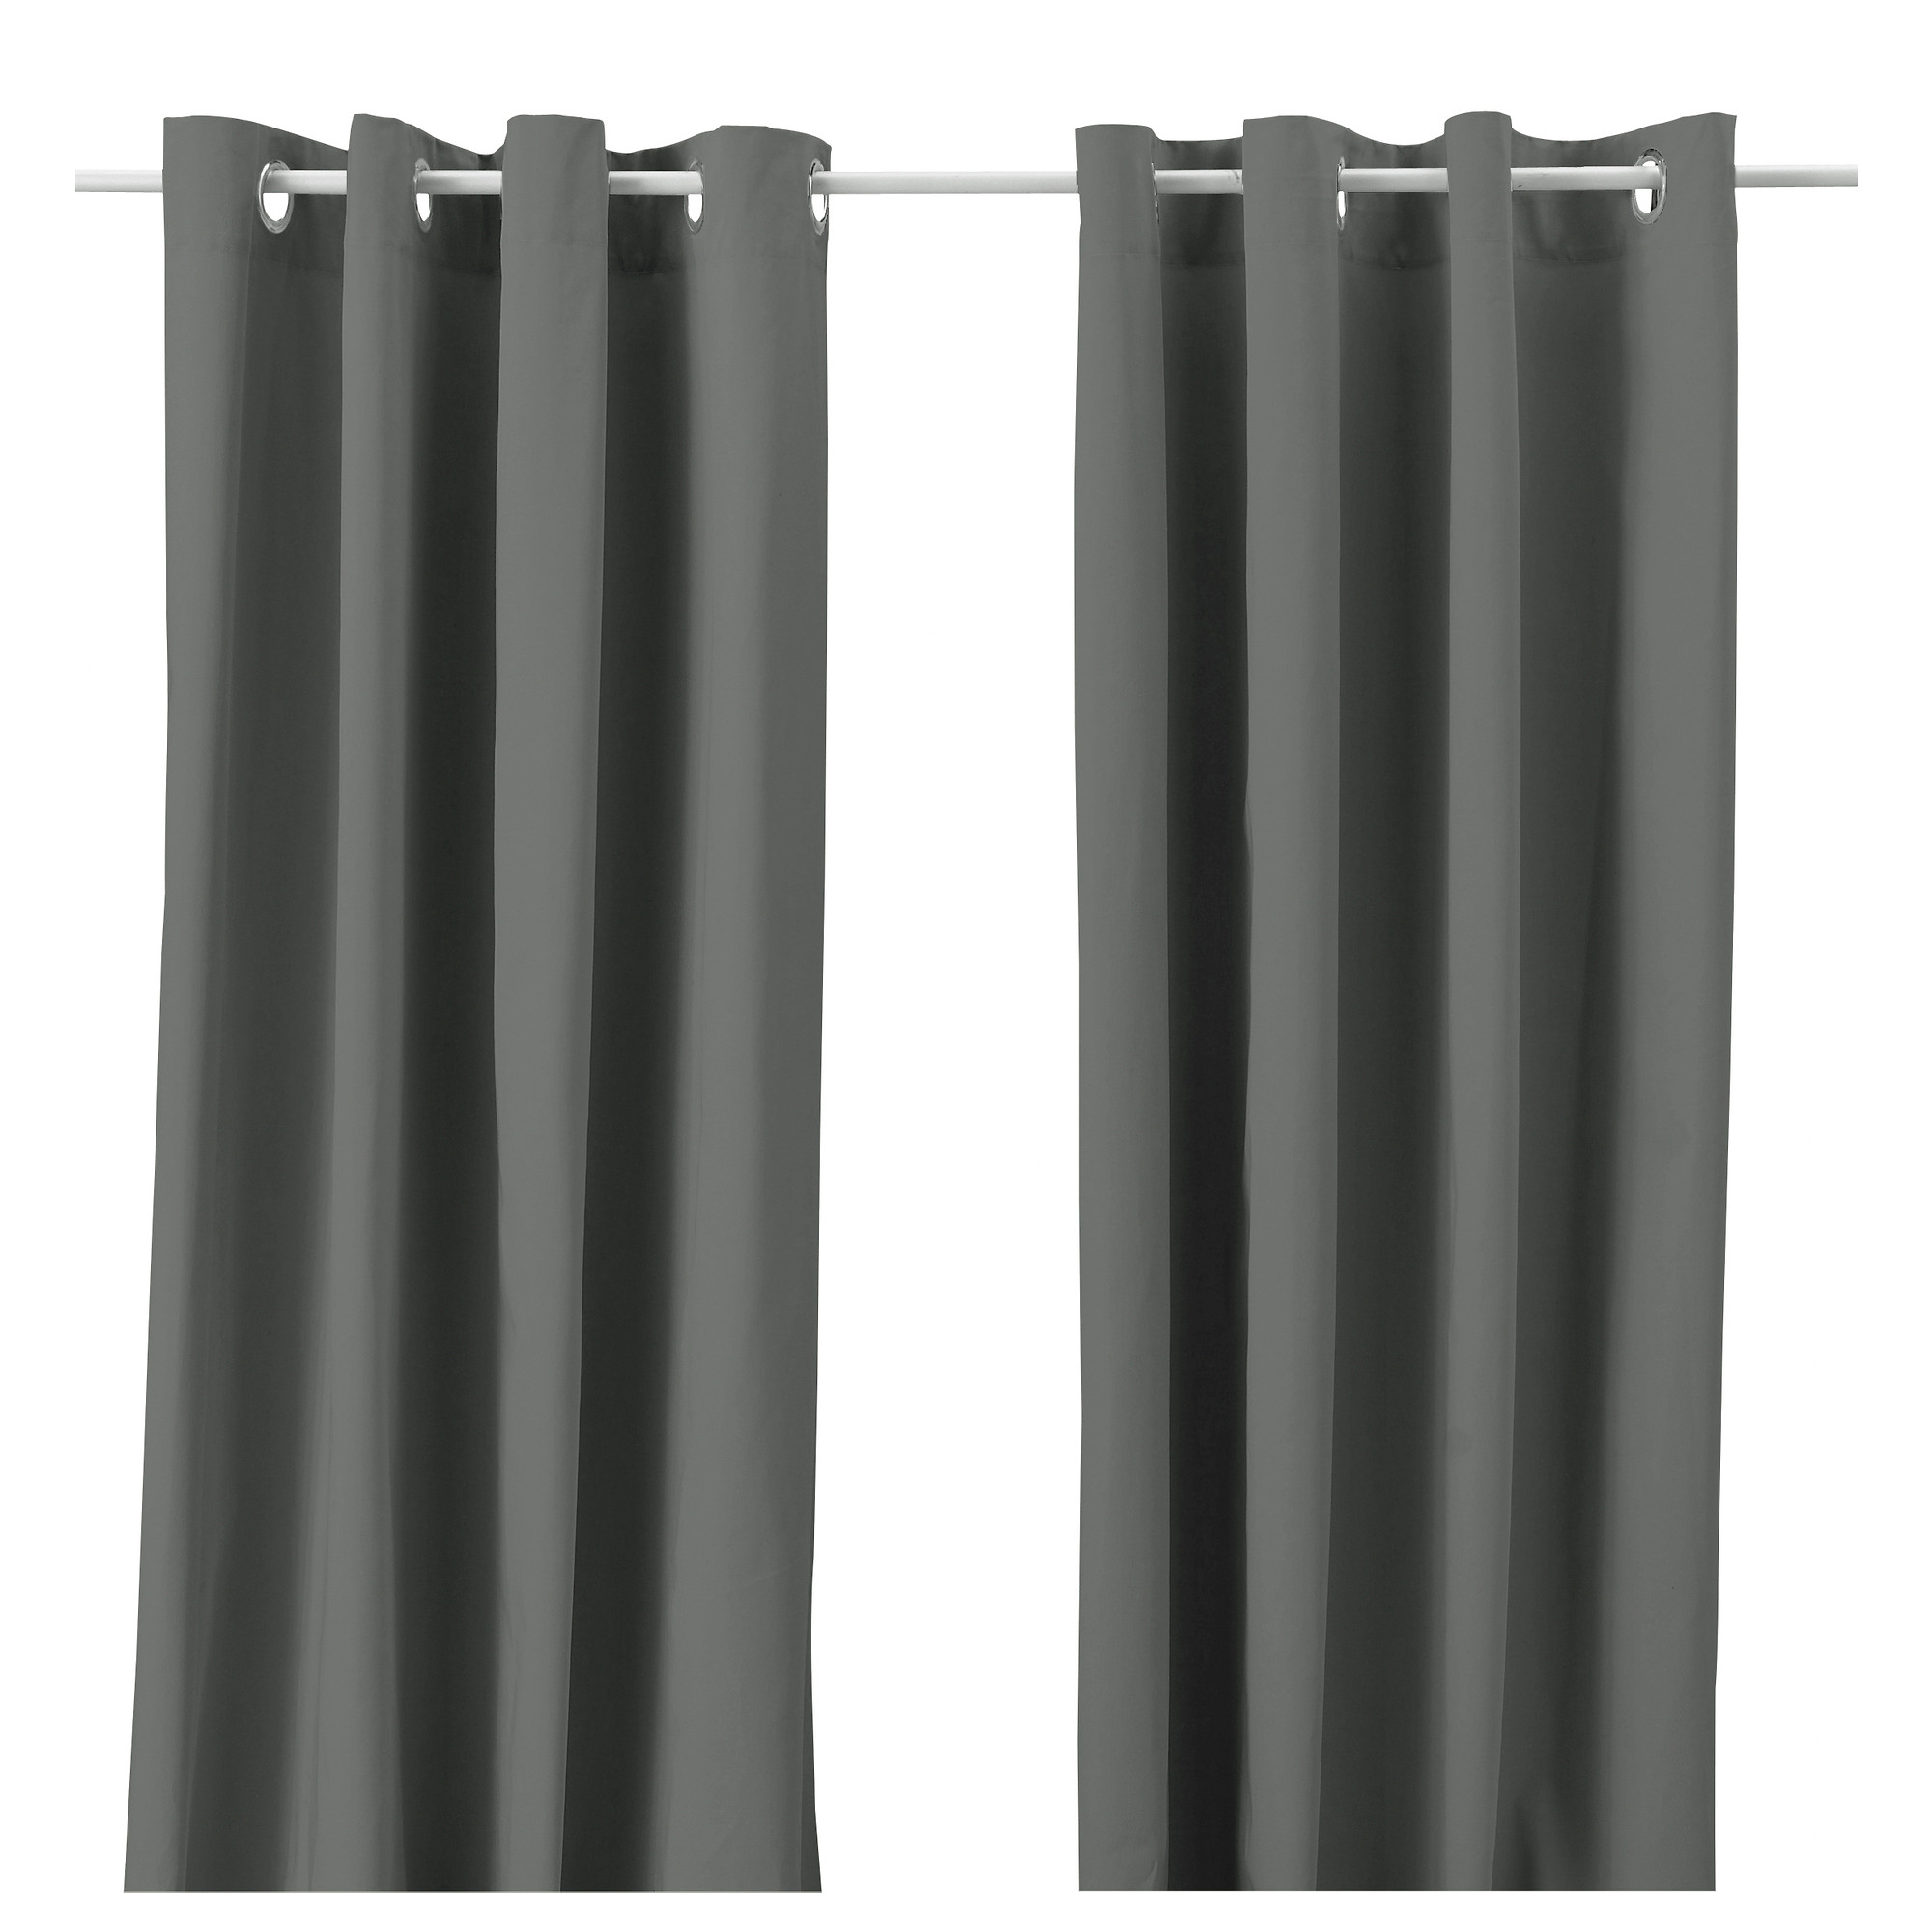 Cheap Blackout Curtains for Inspiring Home Decorating Ideas: Low Priced Curtains | Cheap Blackout Curtains | Thermal Drapes Clearance